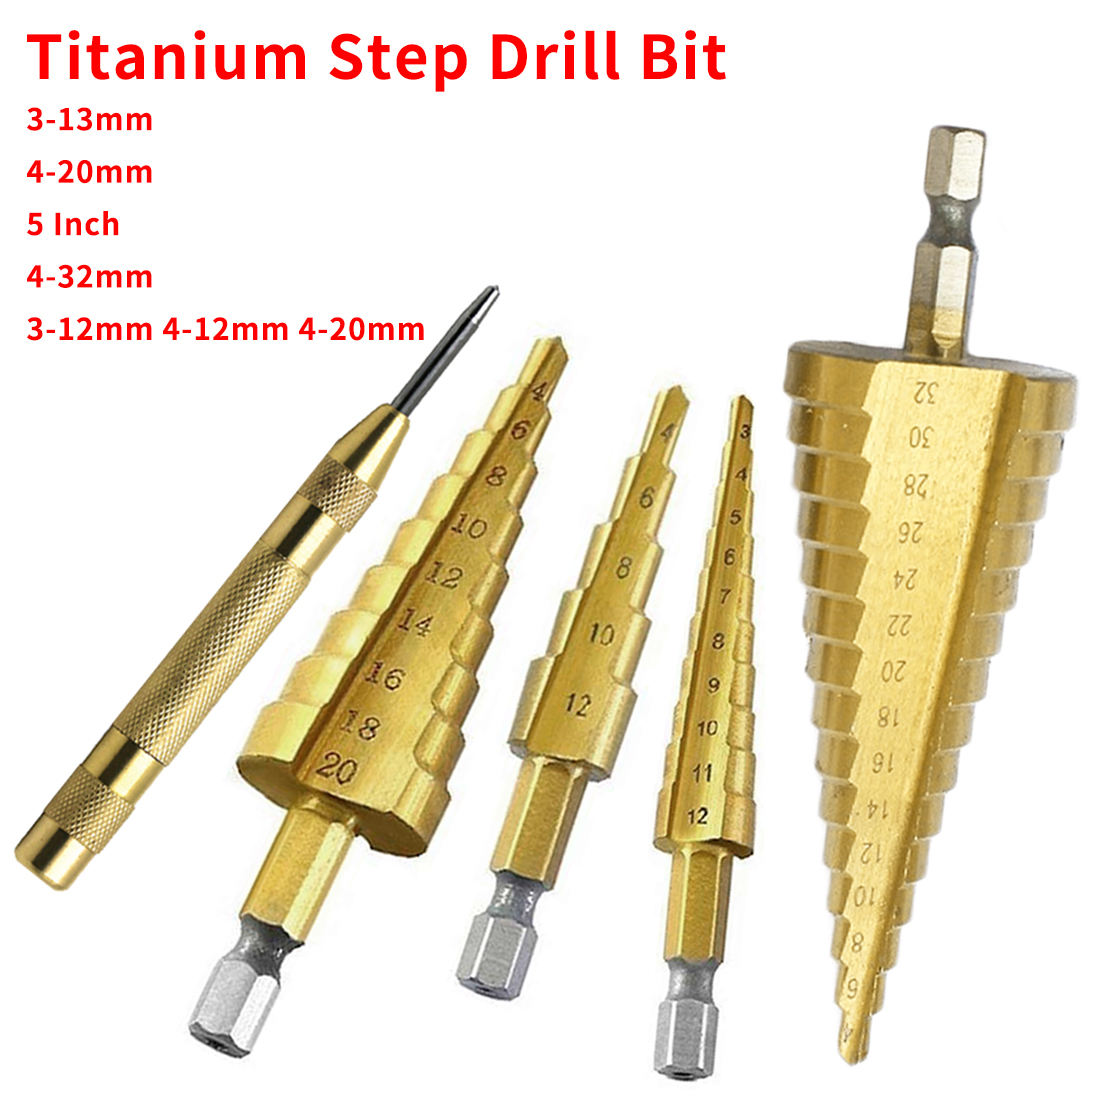 HSS Steel Titanium Step Drill Bit 3-12mm 4-12mm 4-20mm Step Cone Cutt Tools Metal Drill Bit Set For Woodworking Wood